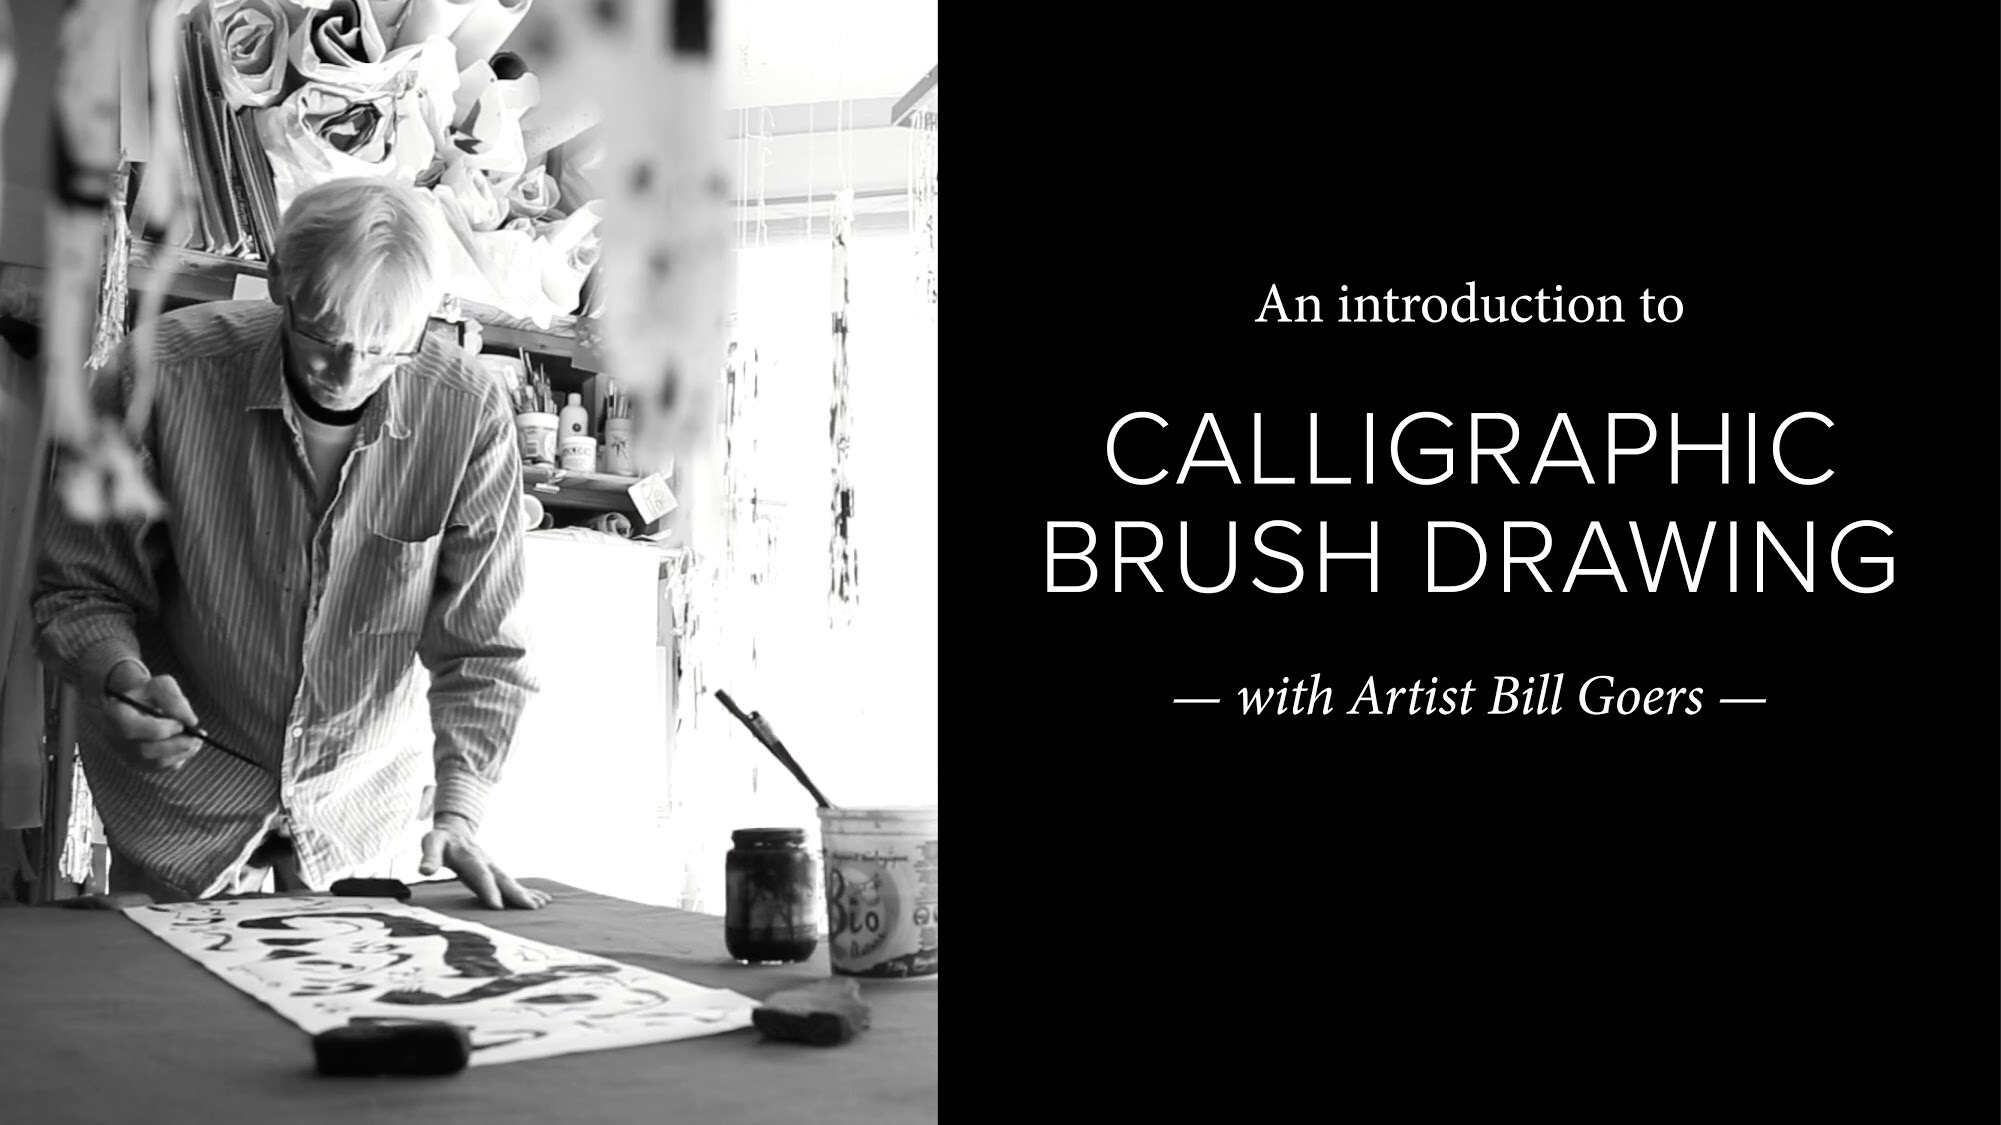 bill goers, calligraphic brush drawing